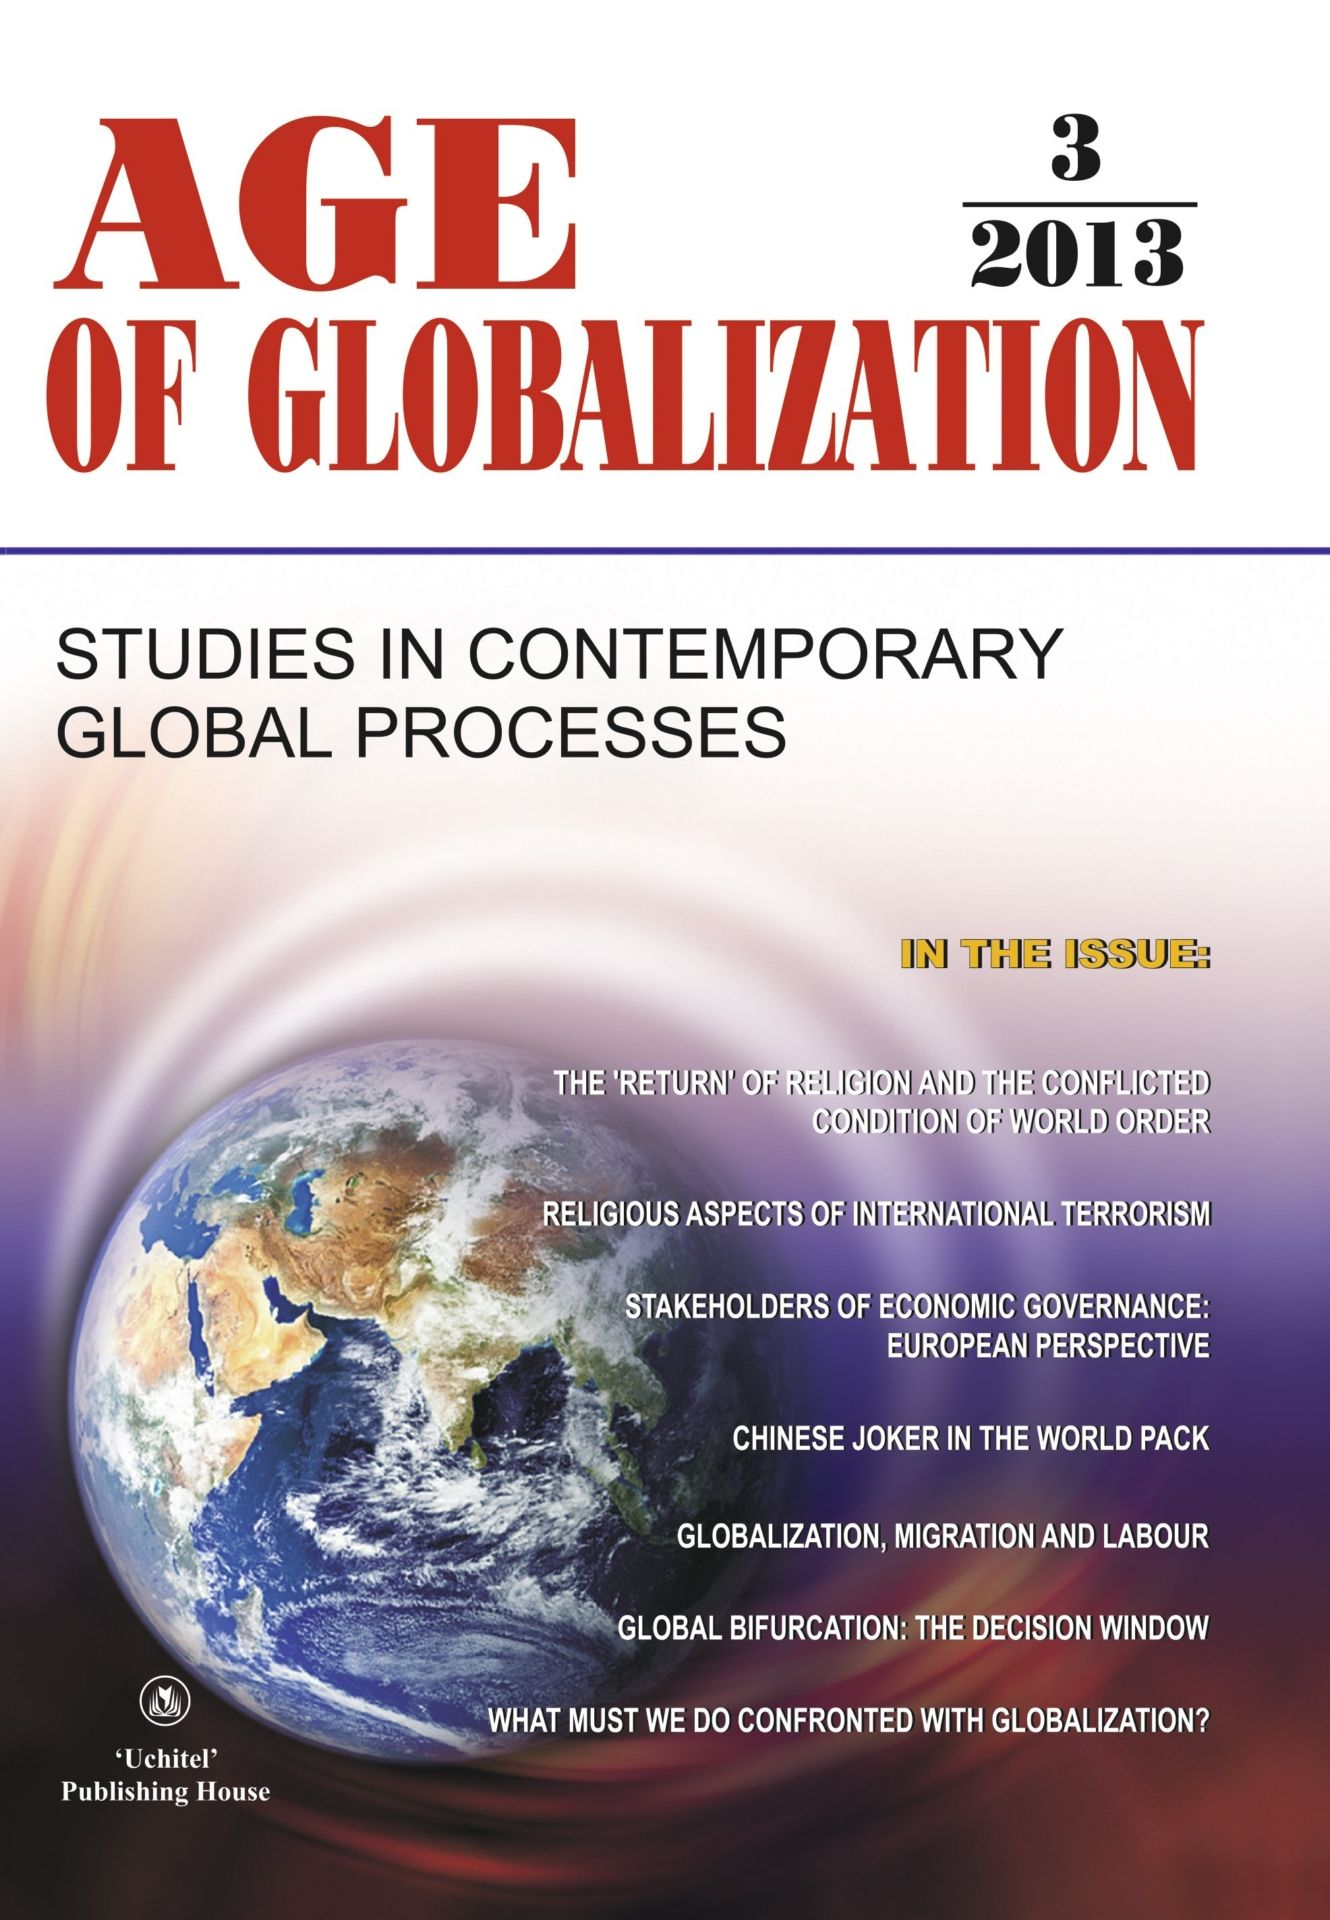 Age of Globalization.